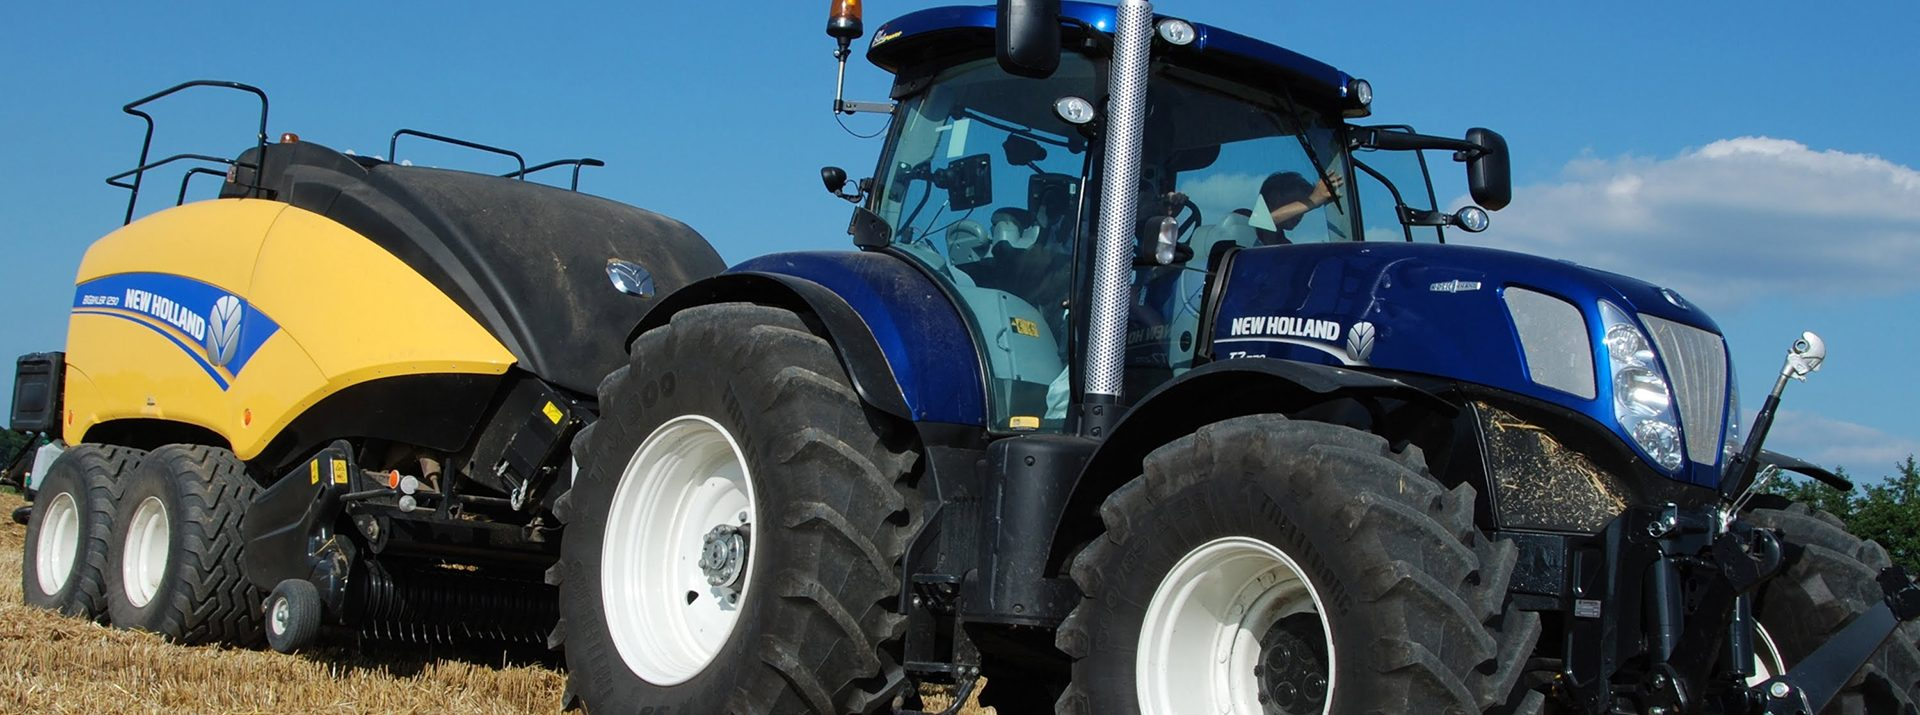 We specialise in genuine spare parts for trucks, tractors and machinery